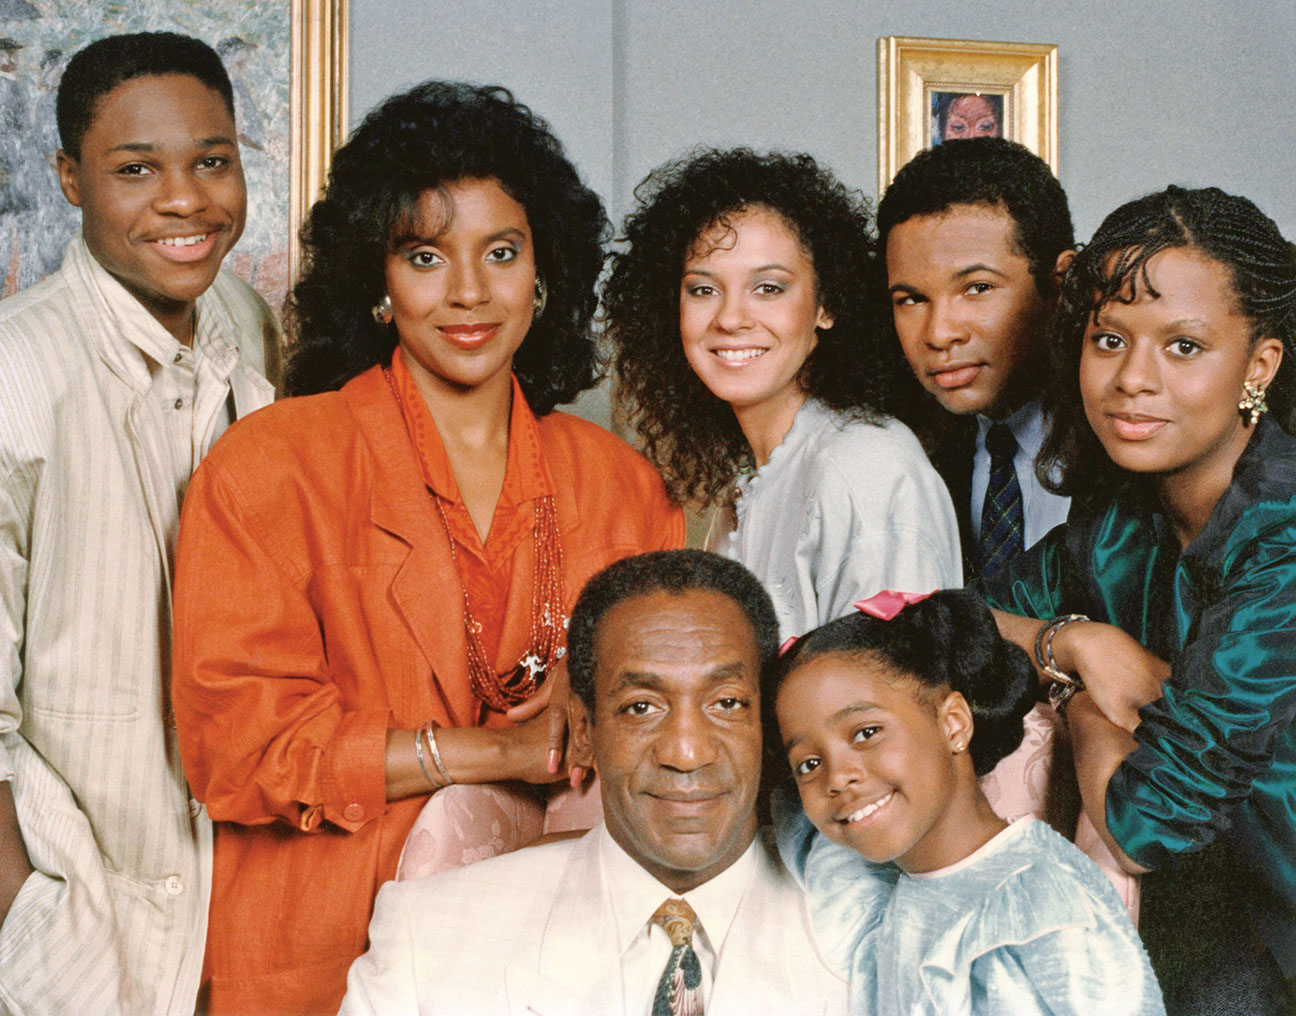 Cosby_how_much_NBC_Knew_Main - H 2014